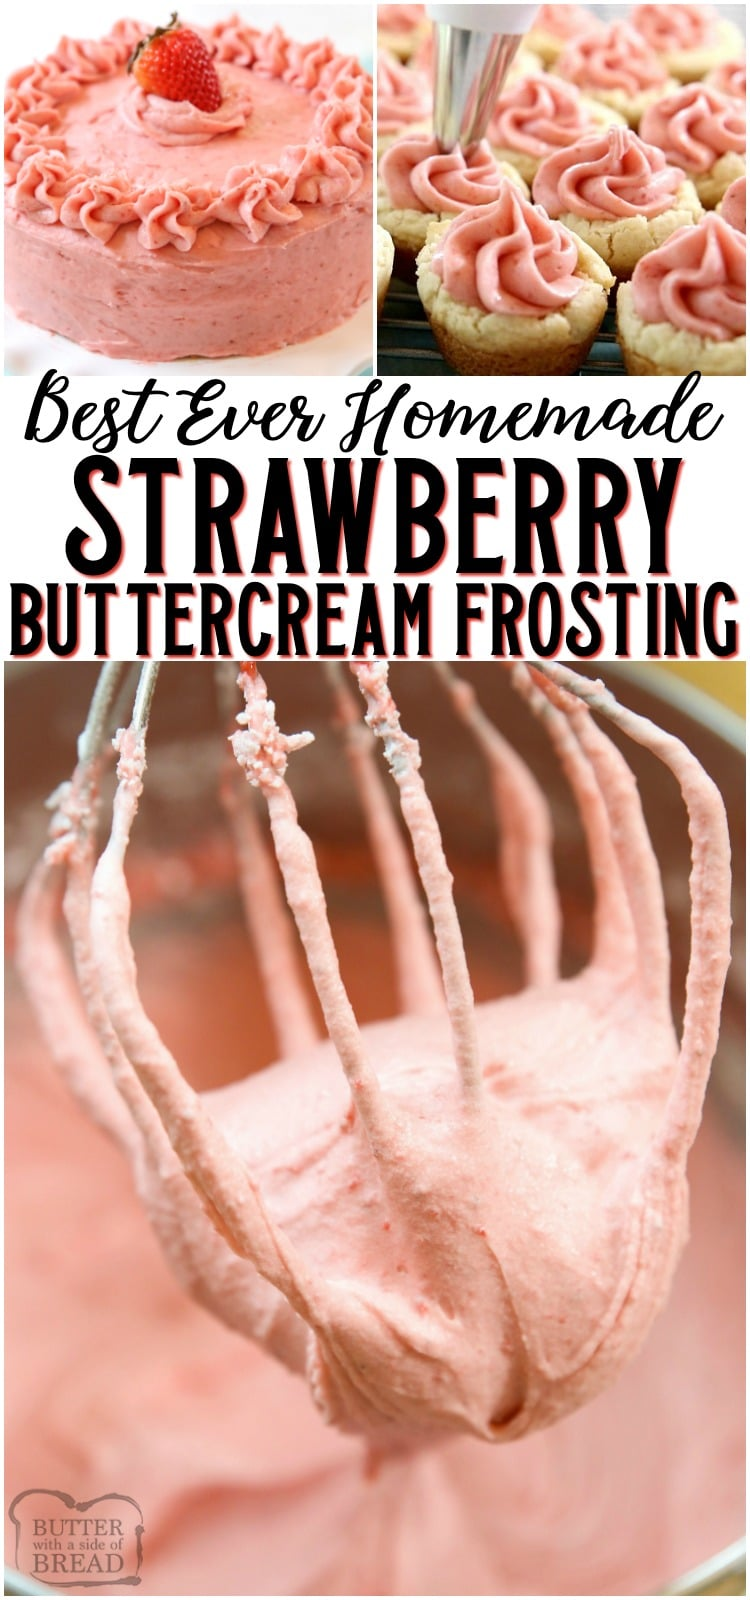 Strawberry Buttercream Frostingmade with fresh strawberries with a perfect, bright strawberry flavor. This is the BEST strawberry frosting recipe ever. No coloring & goes wonderfully on cookies, cakes and cupcakes.